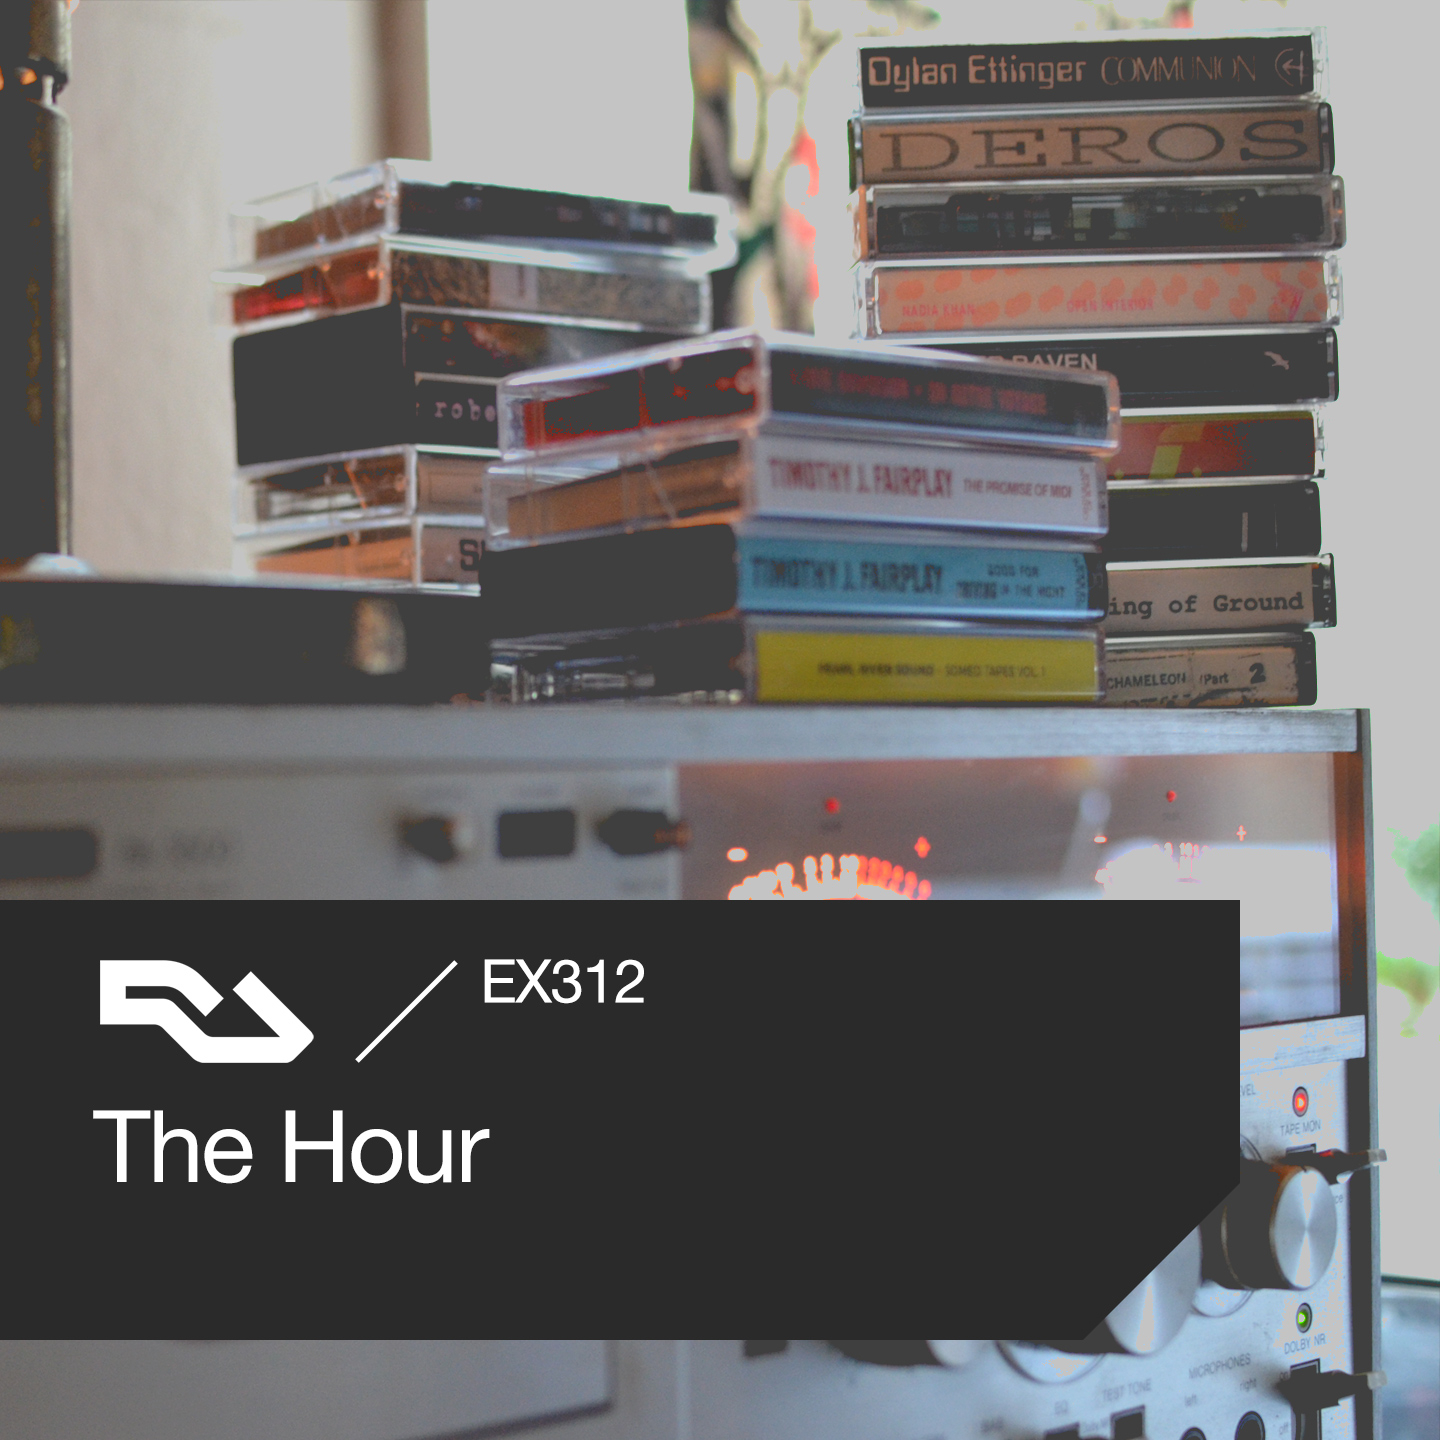 EX.312 The Hour: Al Capone, cassettes, RA roundtable